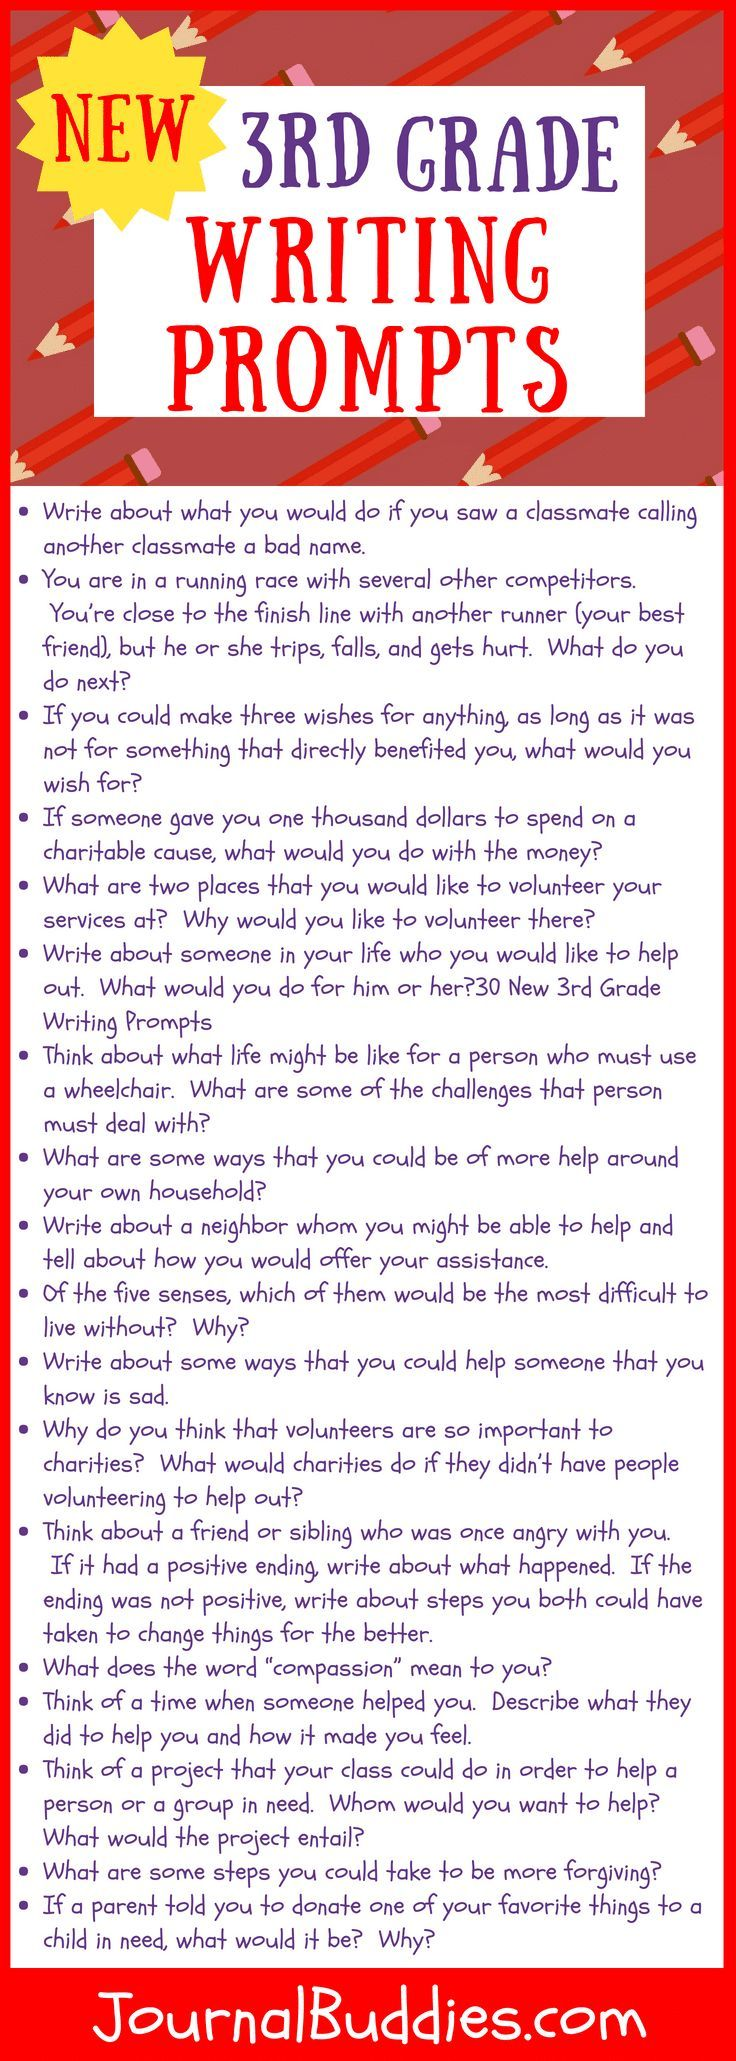 3rd Grade Writing Prompts 3rd Grade Writing Prompts 3rd Grade Writing Writing Prompts For Kids Creative writing prompts for third